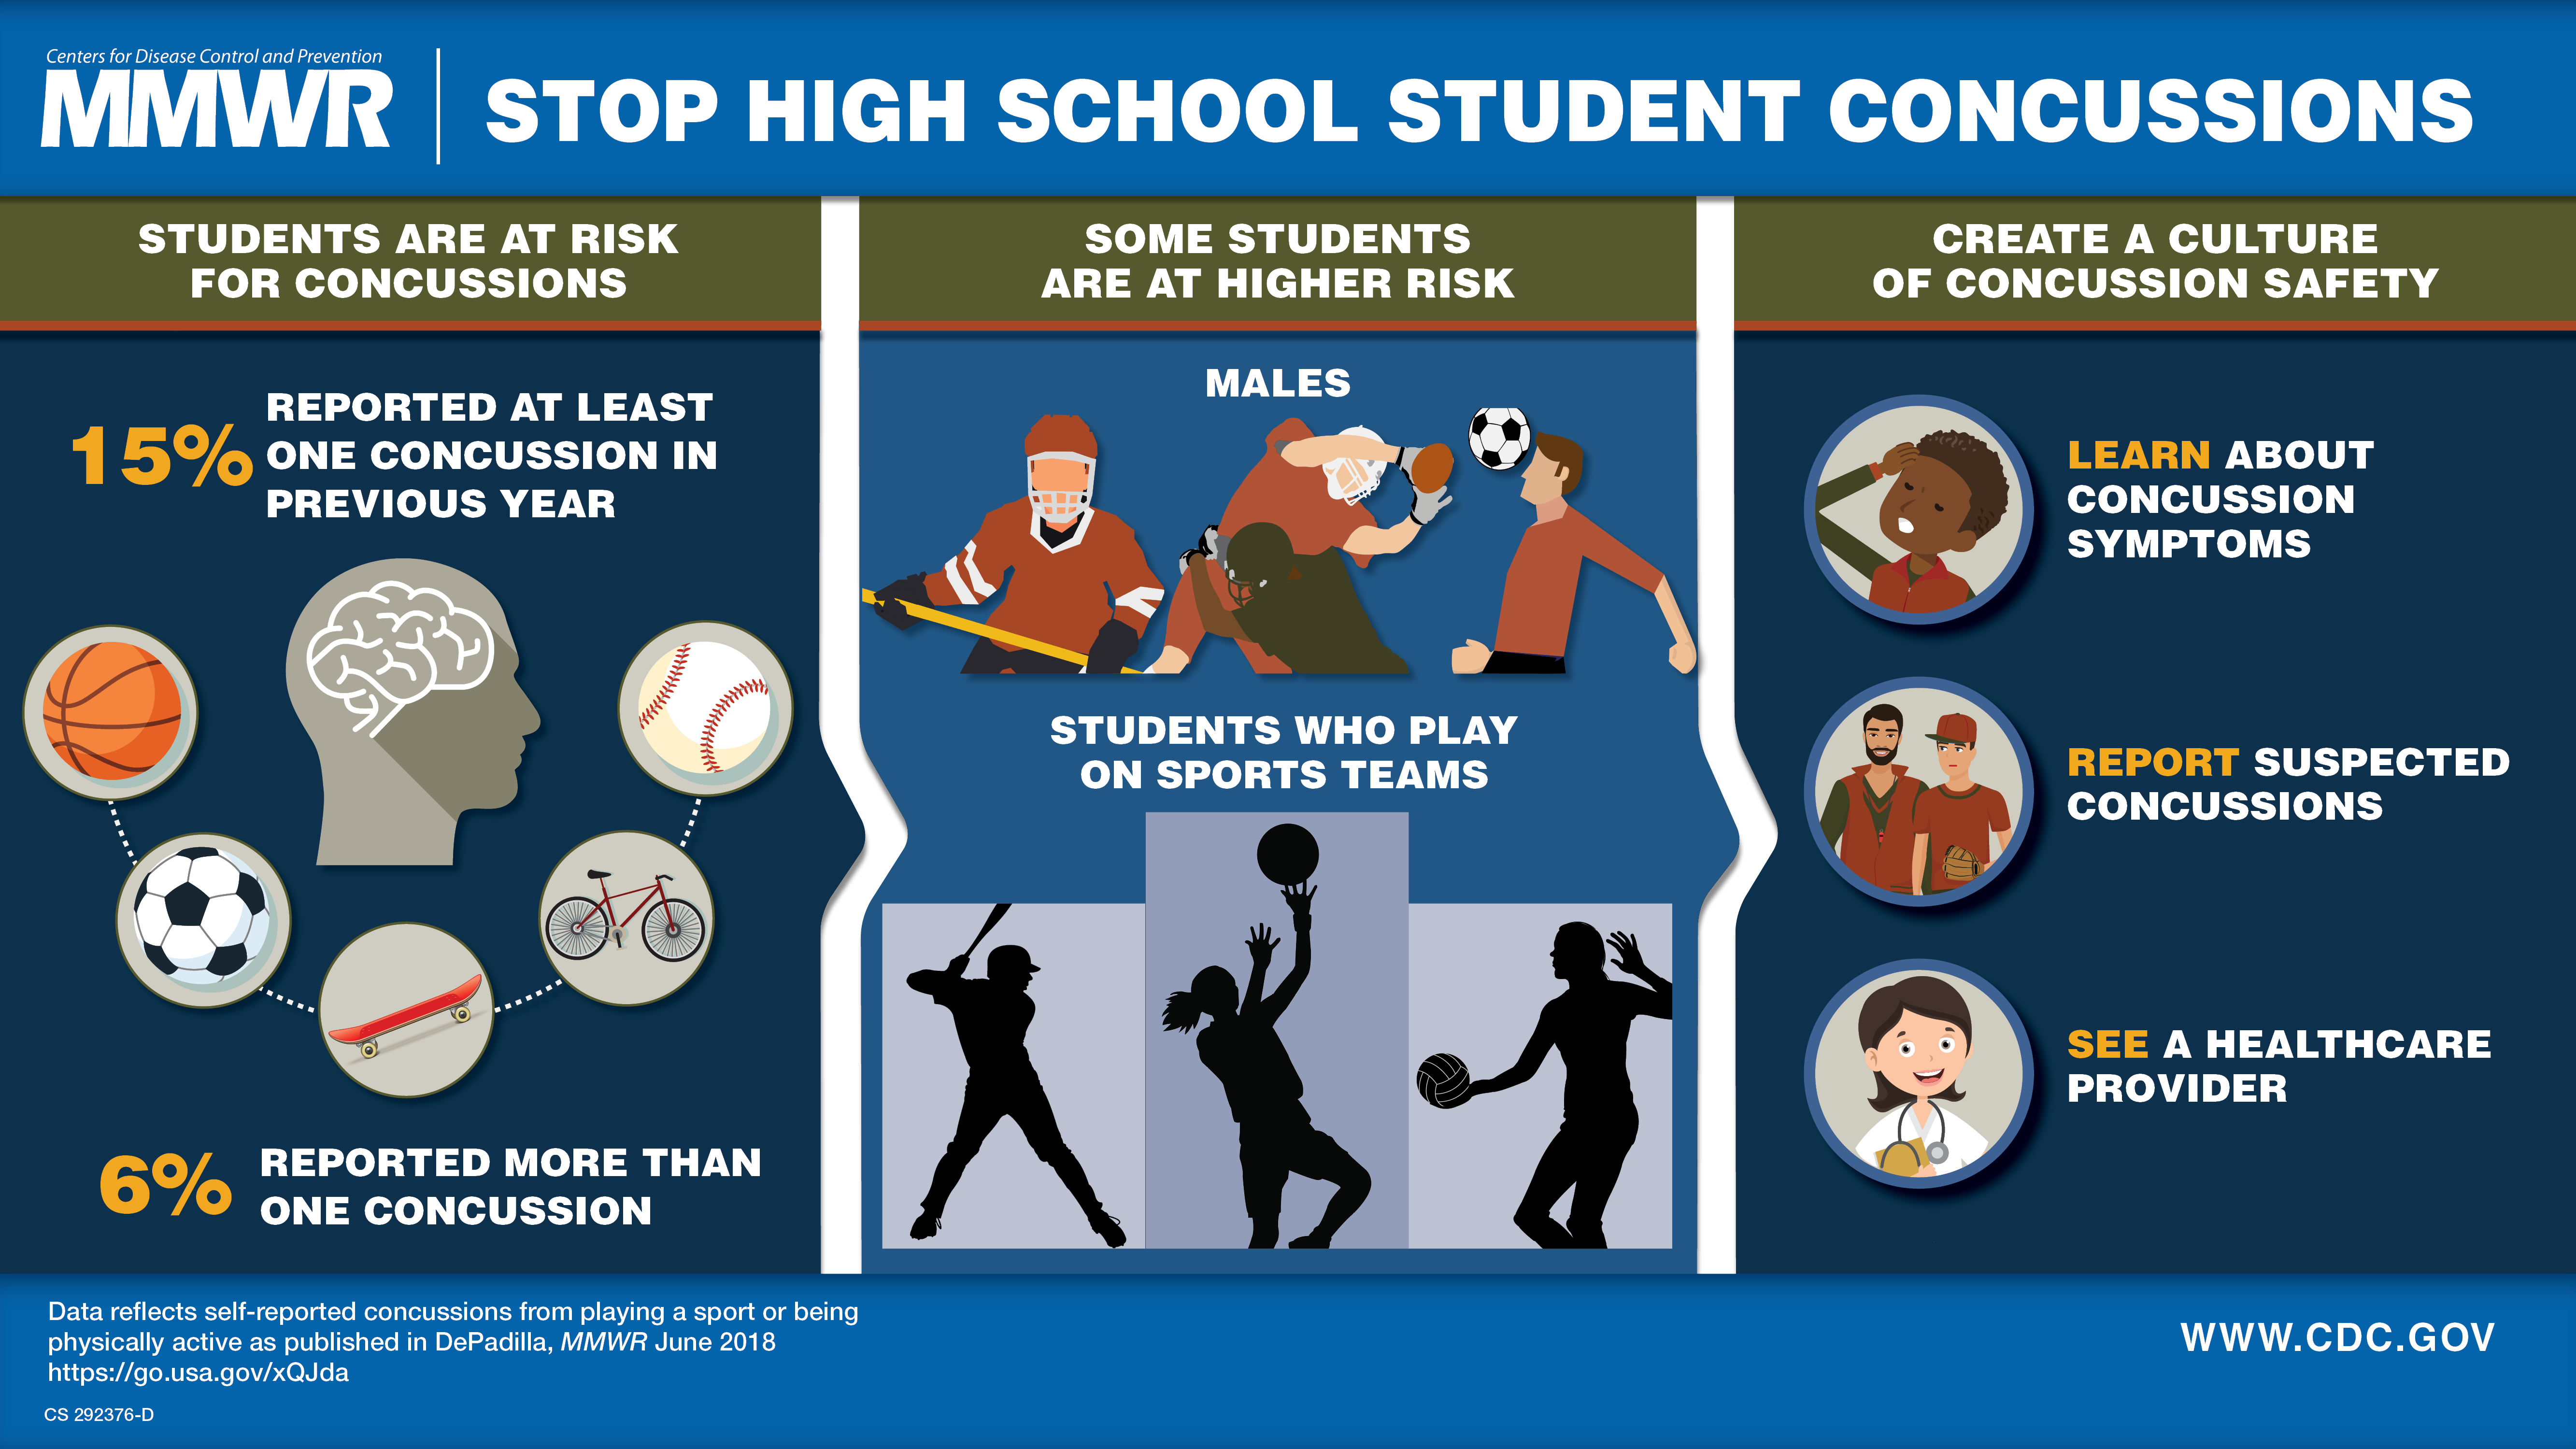 The figure above is a visual abstract displaying the findings of the report which suggest that students who play on team sports are at a higher risk for concussion than students who do not play on a sports team.